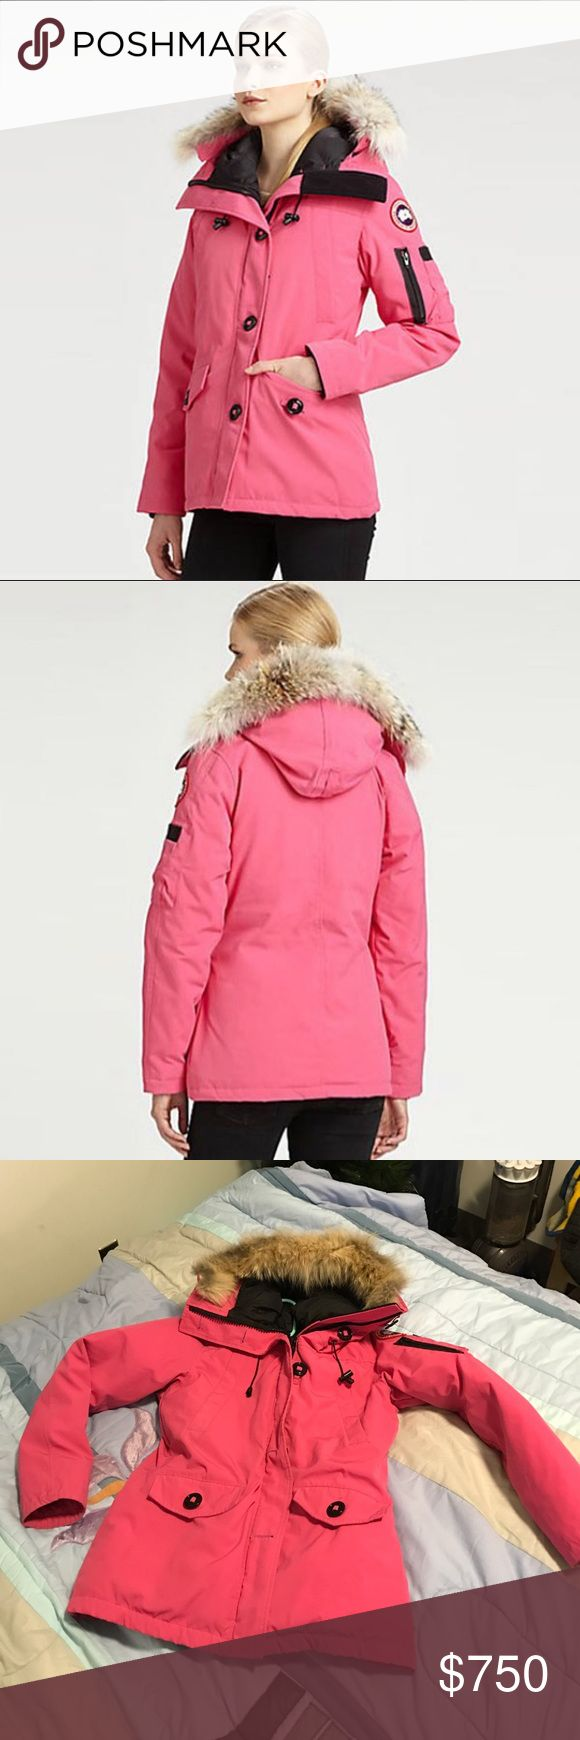 100% AUTH $1K RETAIL CANADA GOOSE EXPEDITION PARKA 100% AUTHENTIC $1000.00 PLUS TAX RETAIL CANADA GOOSE EXPEDITION FEMME WOMENS PARKA COAT SIZE MEDIUM, FITS A SMALL EASILY AS WELL. GUARANTEED AUTHENTIC FROM BLOOMINGDALES IN NEW YORK WITH HOLOGRAM TO PROVE AUTHENTICITY. SUPER WARM AND INSULATED WILL KEEP YOU WARM IN EVEN THE COLDEST WEATHER. WORN 1 SEASON GREAT GENTLY USED CONDITION. •••PRICED TO SELL SAME DAY, OFFERS WELCOME THROUGH THE OFFER OPTION, NO TRADES OR HOLDS••• Canada Goose…